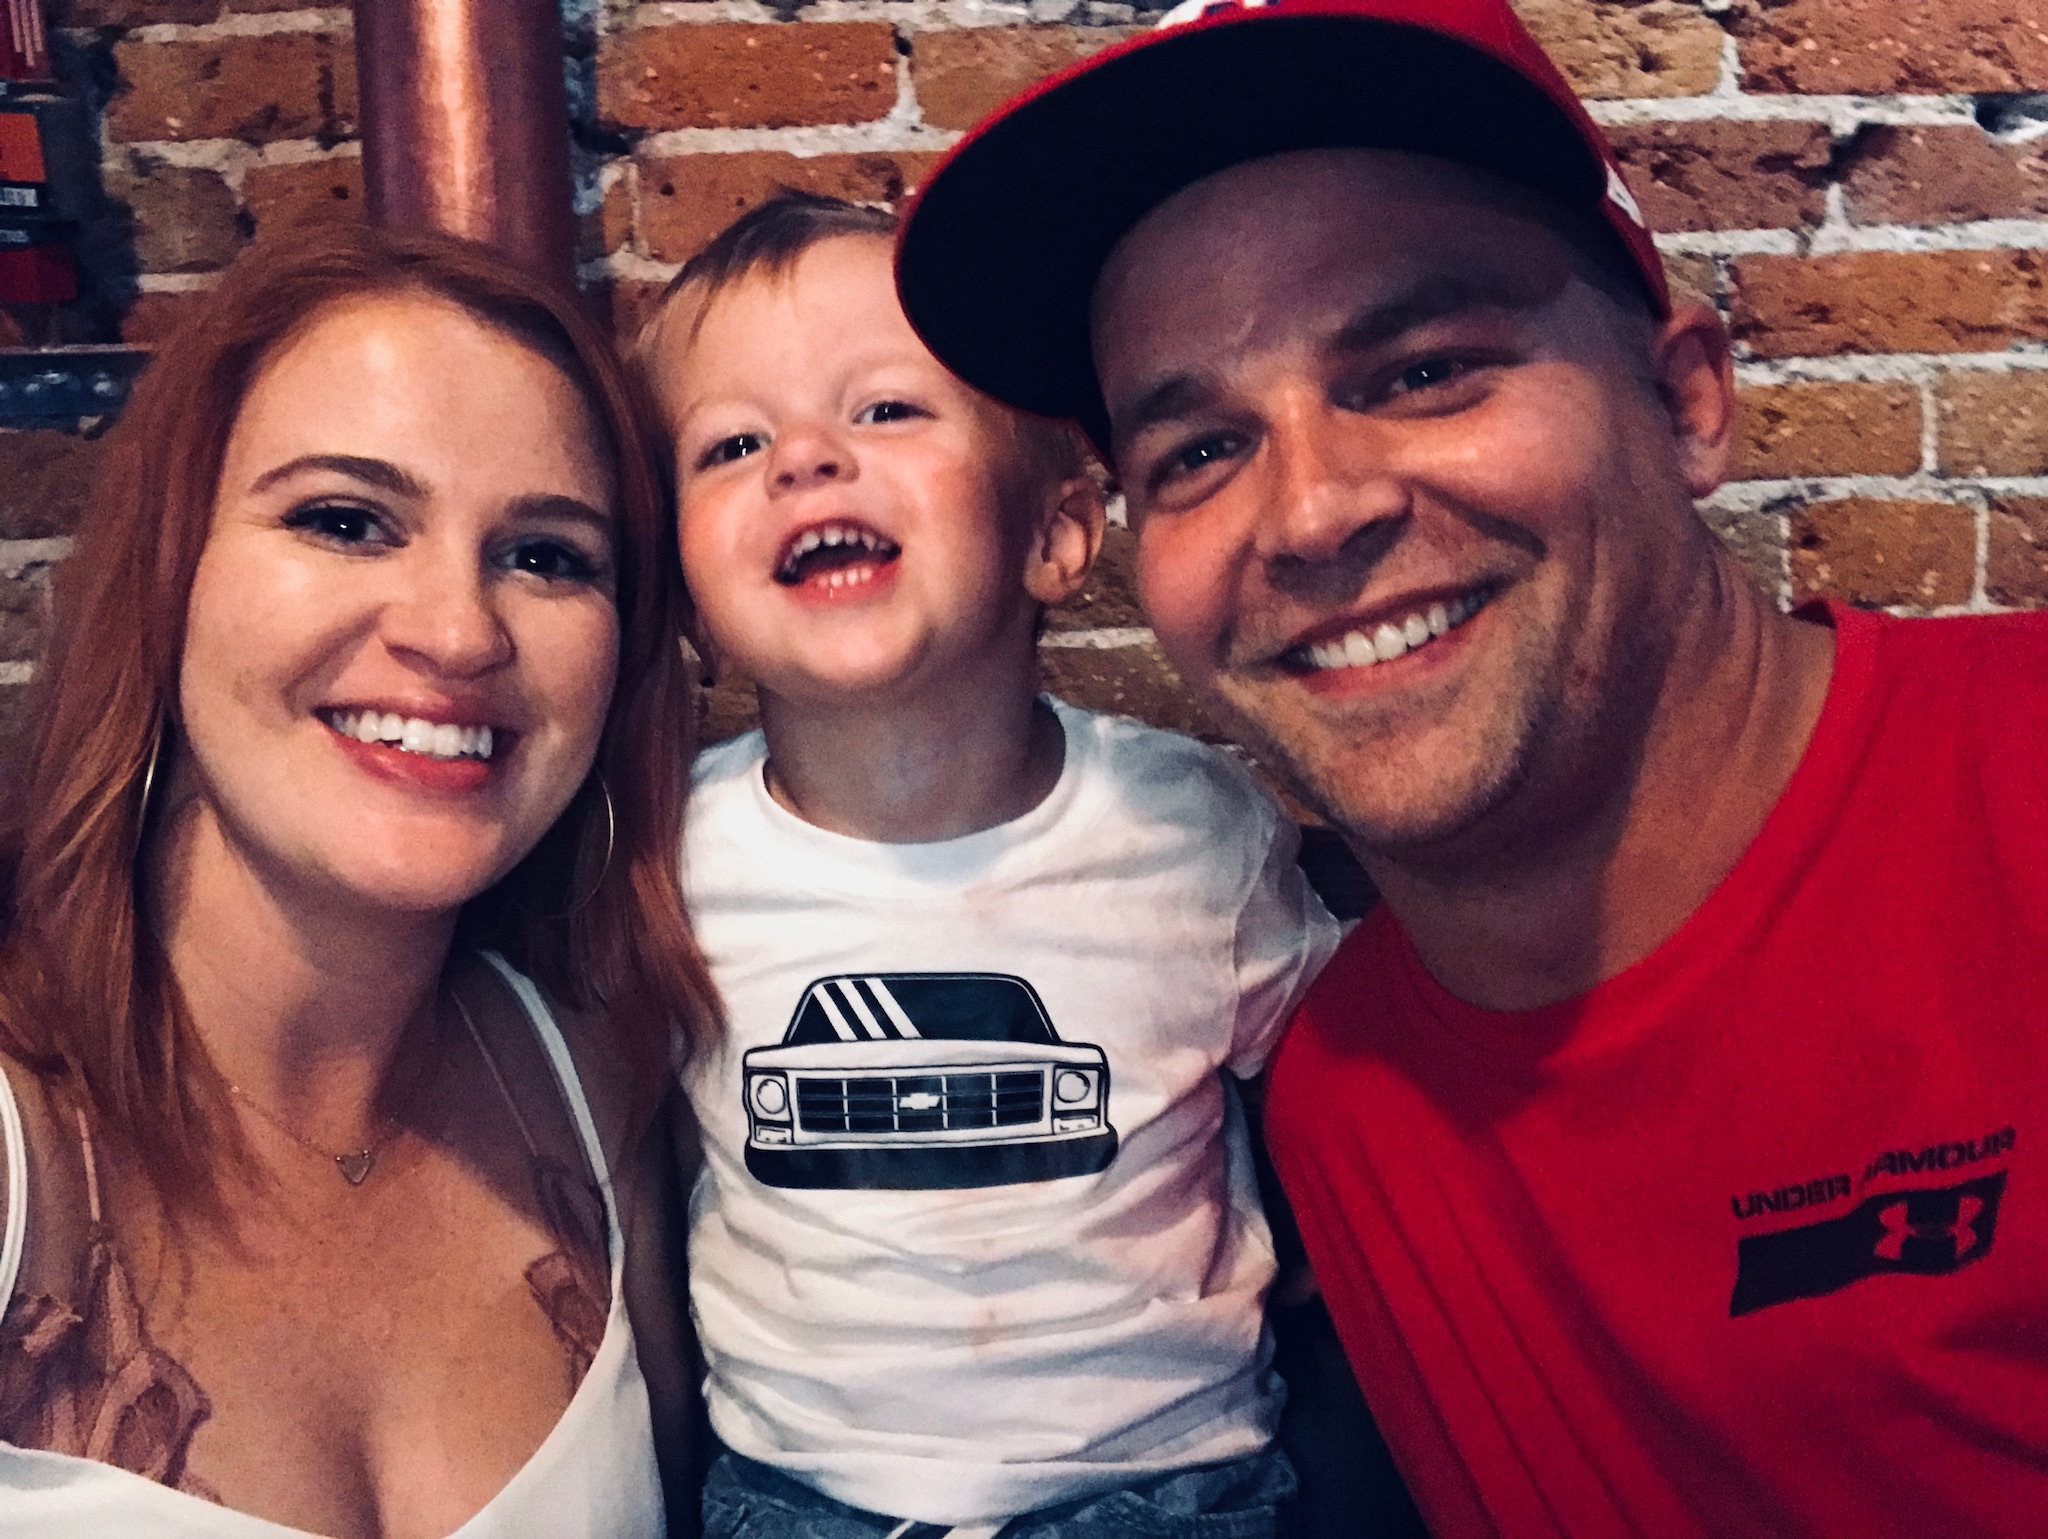 """Here we are at a bar in downtown Denver because our night did not go as planned at all. Lincoln is wearing his favorite """"t ruck shirt """" as he asks to wear daily."""